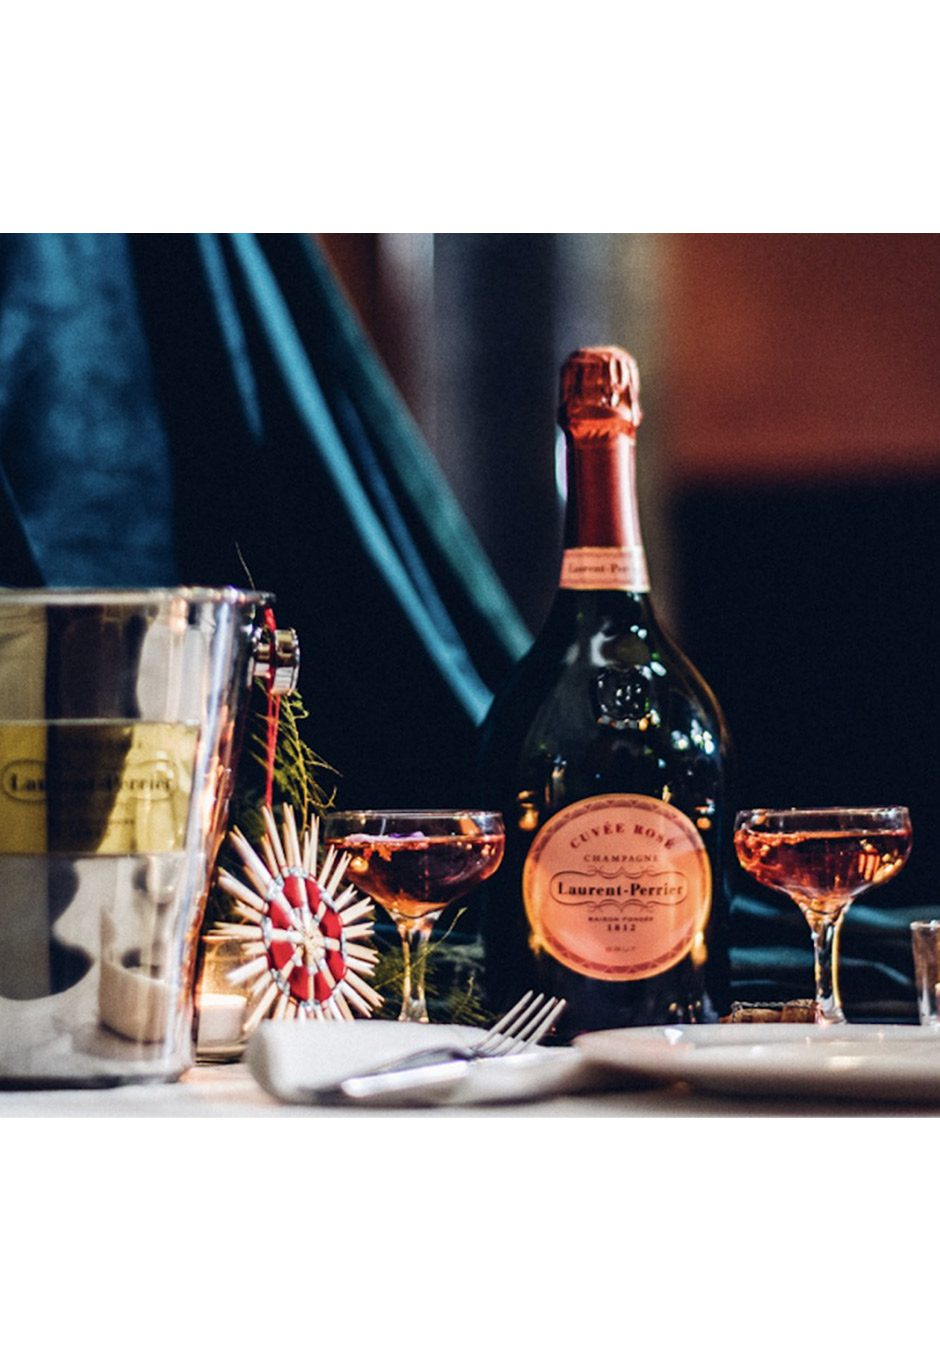 Laurent-Perrier | Rose Champagne | 75cl Promo